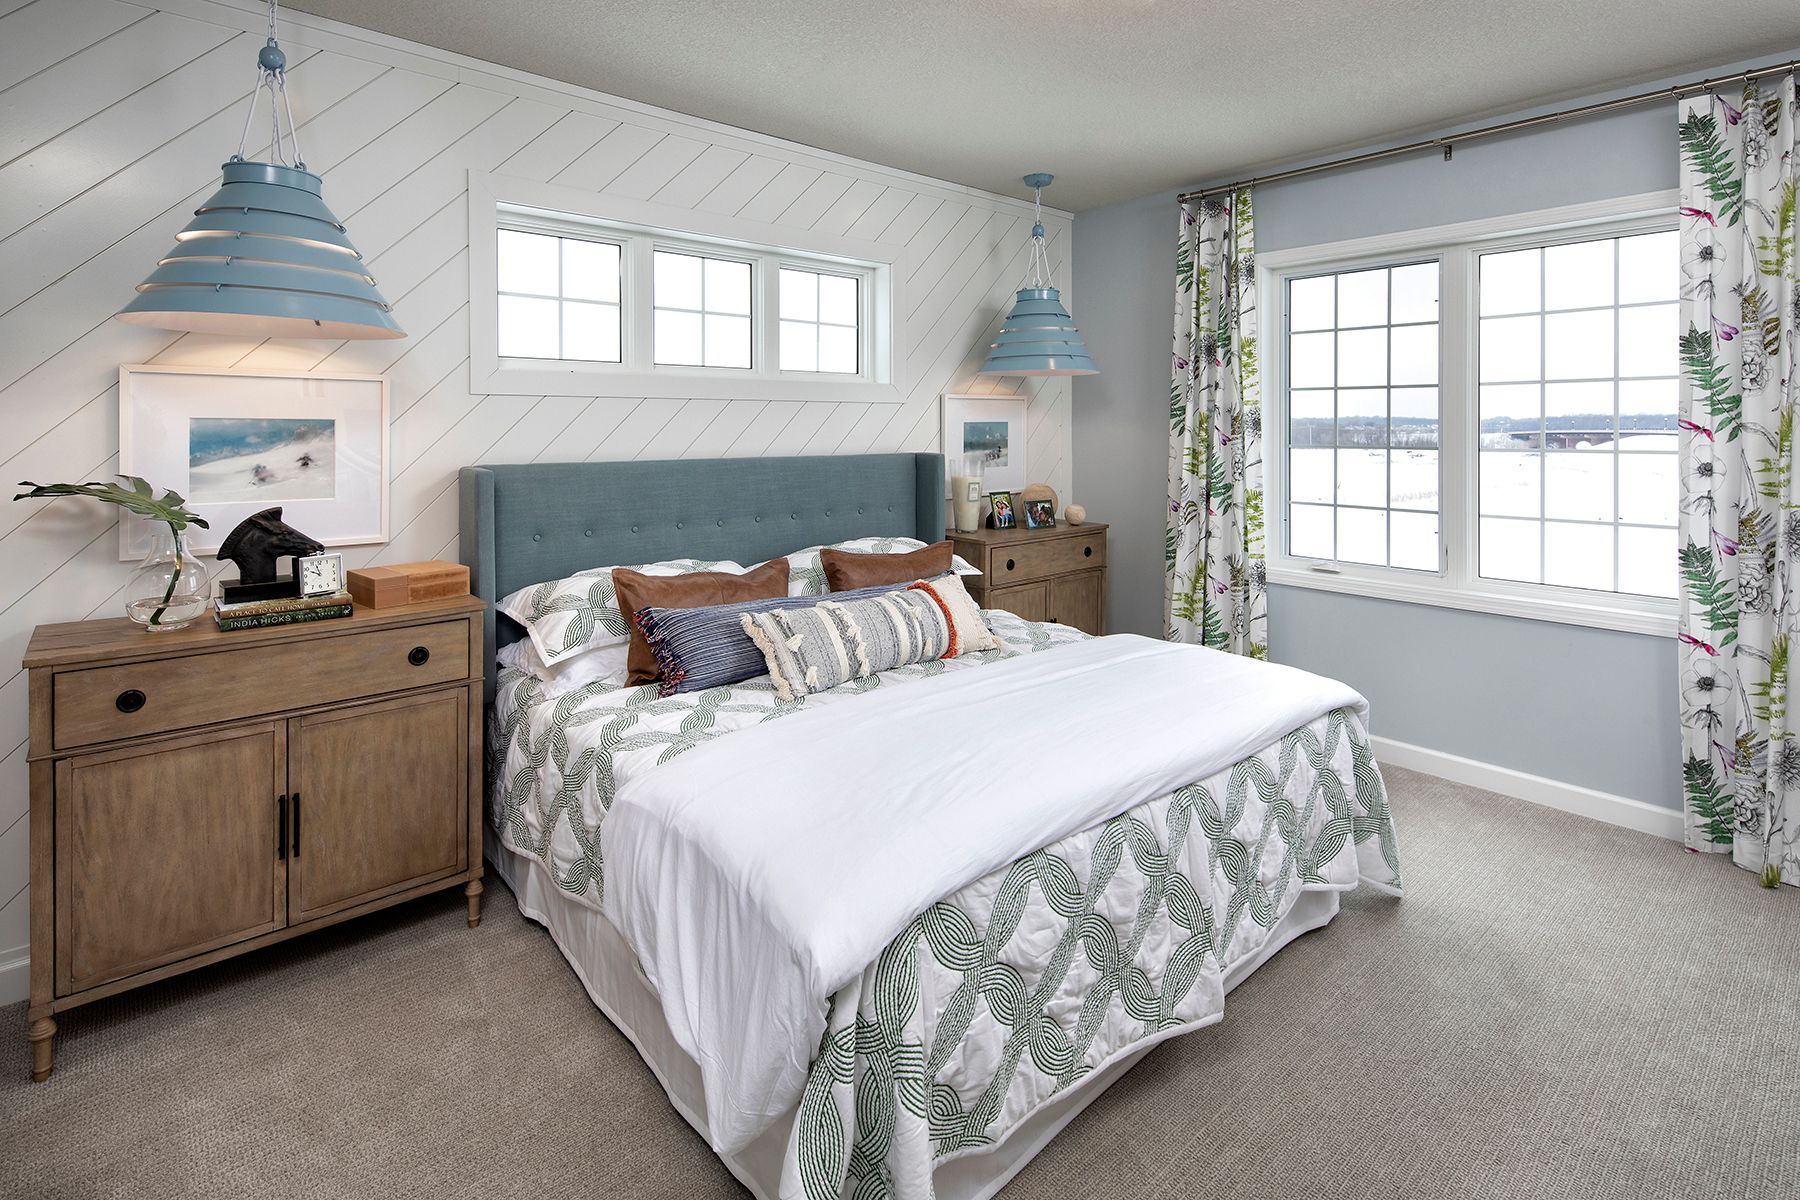 Bedroom featured in the Cedarwood By M/I Homes in Minneapolis-St. Paul, MN